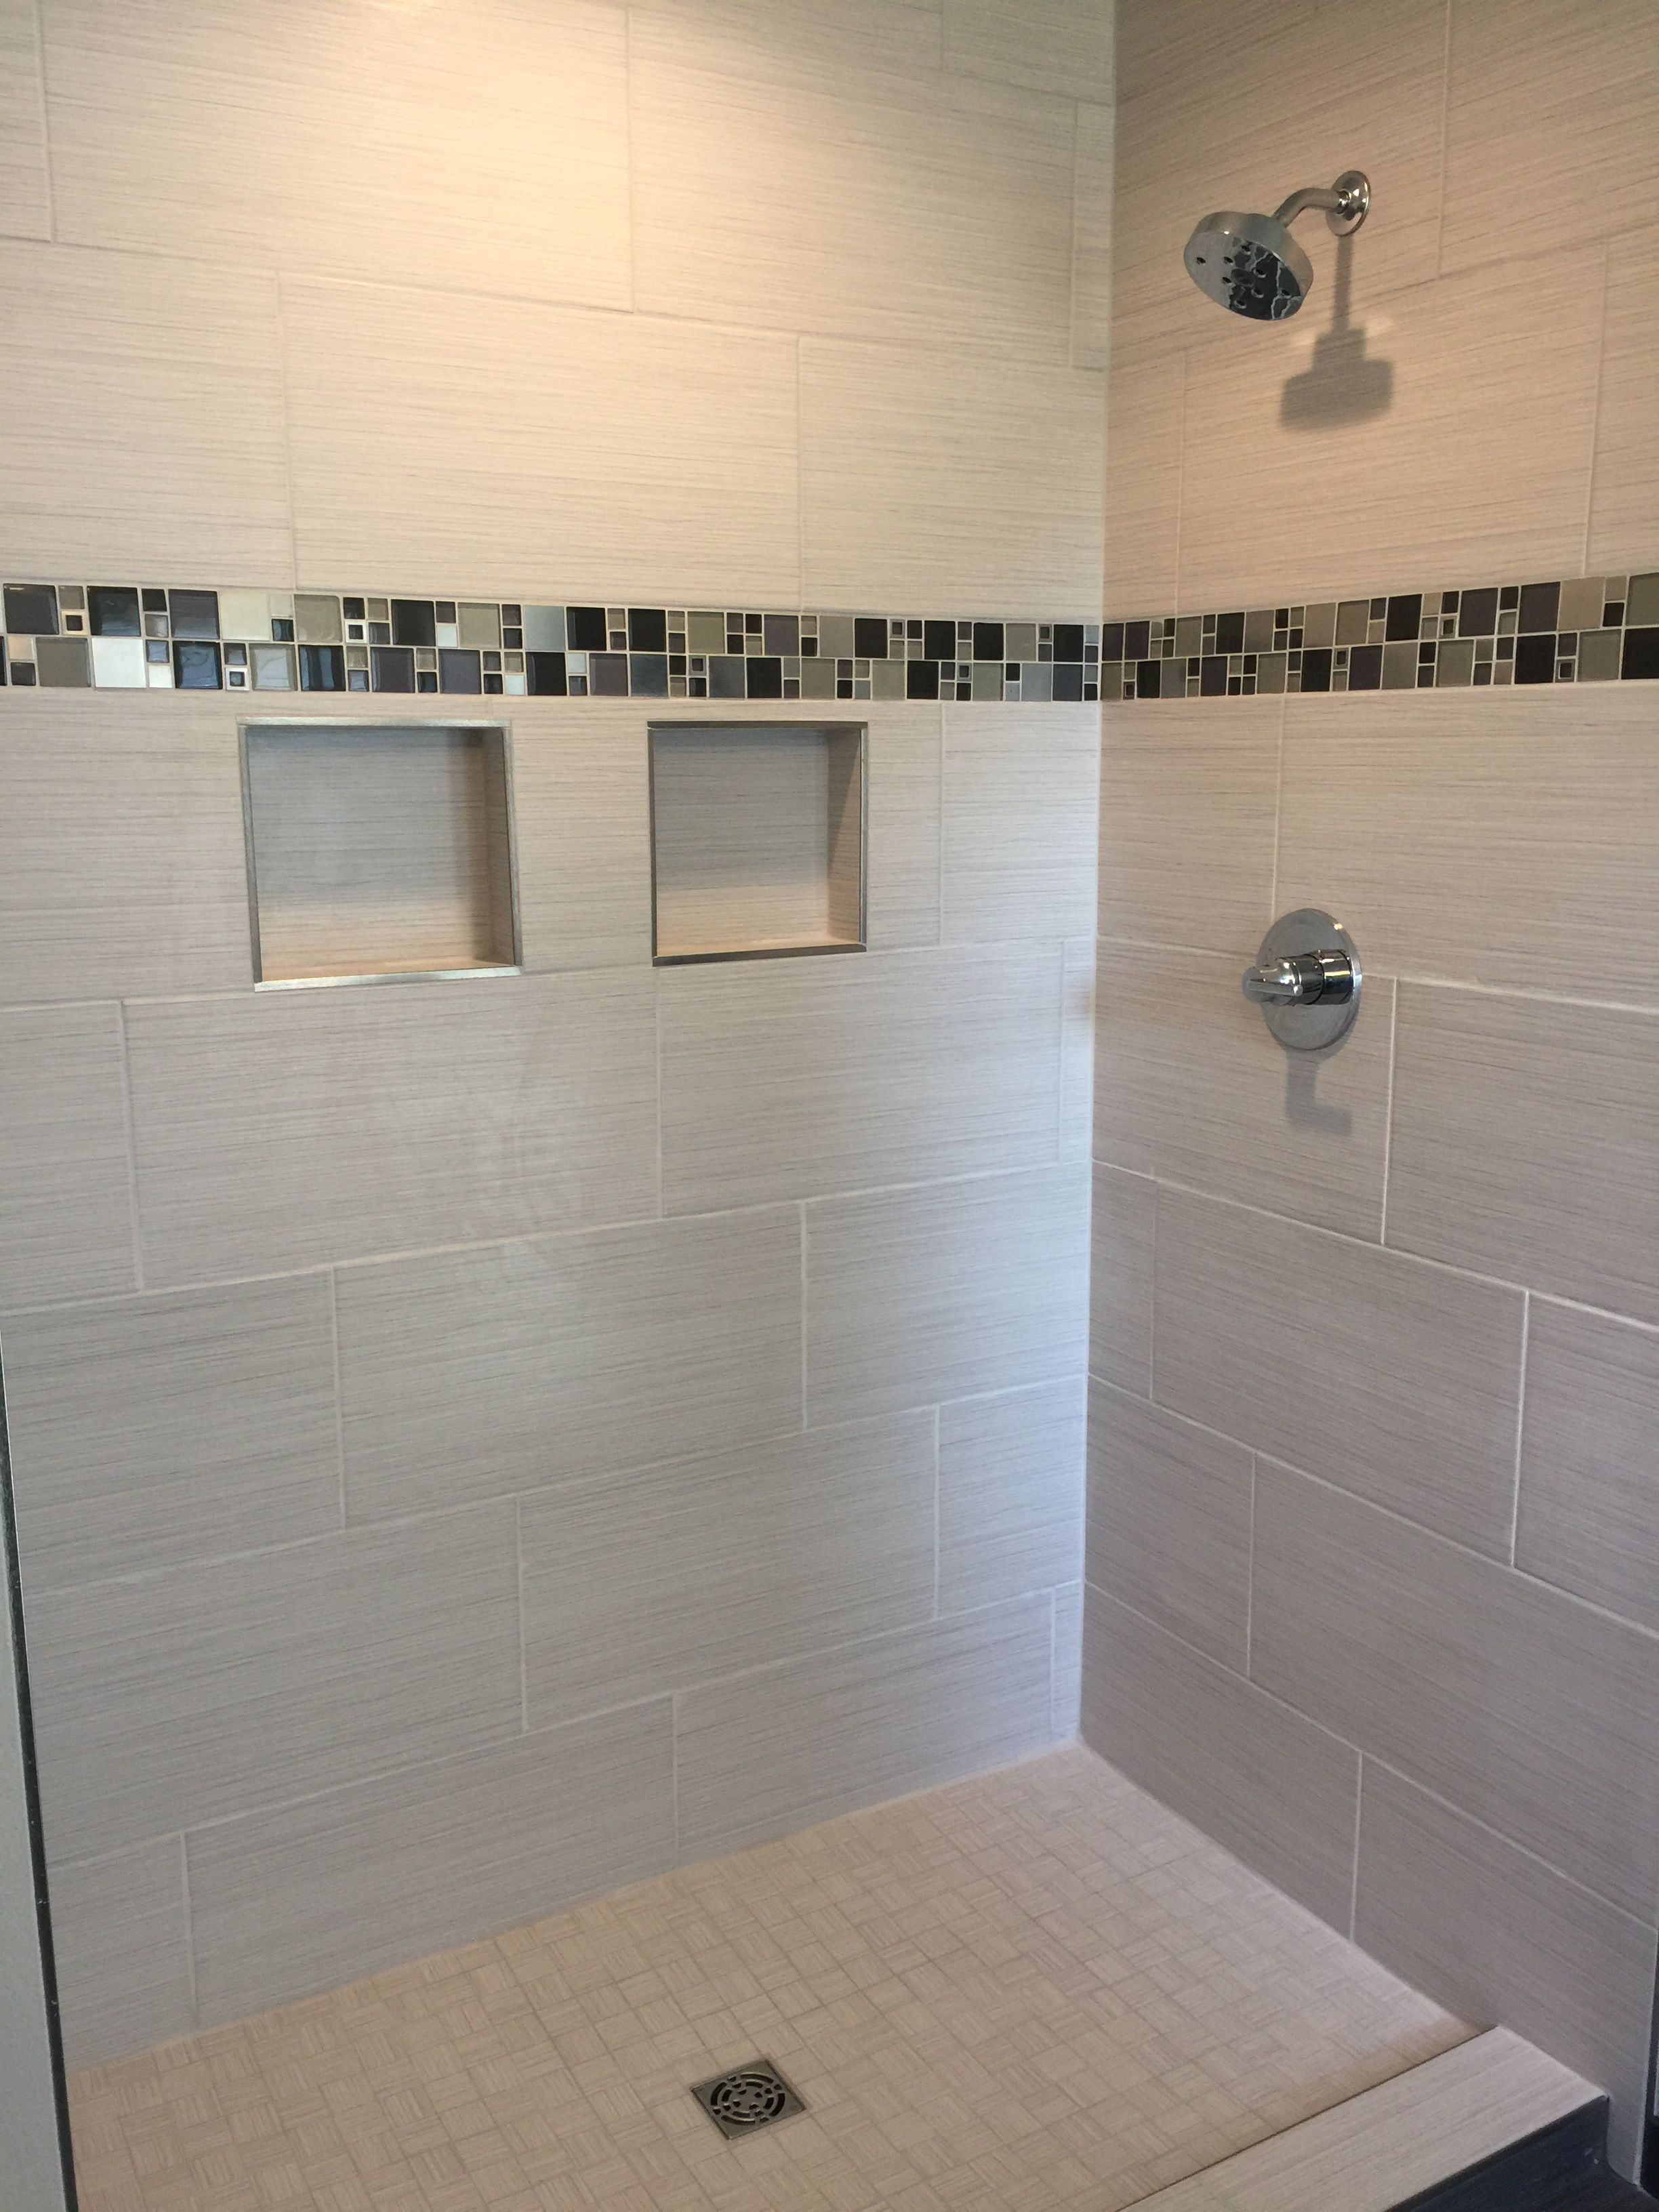 Custom Tiled Shower With 12x24 Satiated Tile Run 1 3 Staggered Vertically With A Glass And Metal Mosaic Accent Shower Tile Custom Tile Shower Floor Tile Design